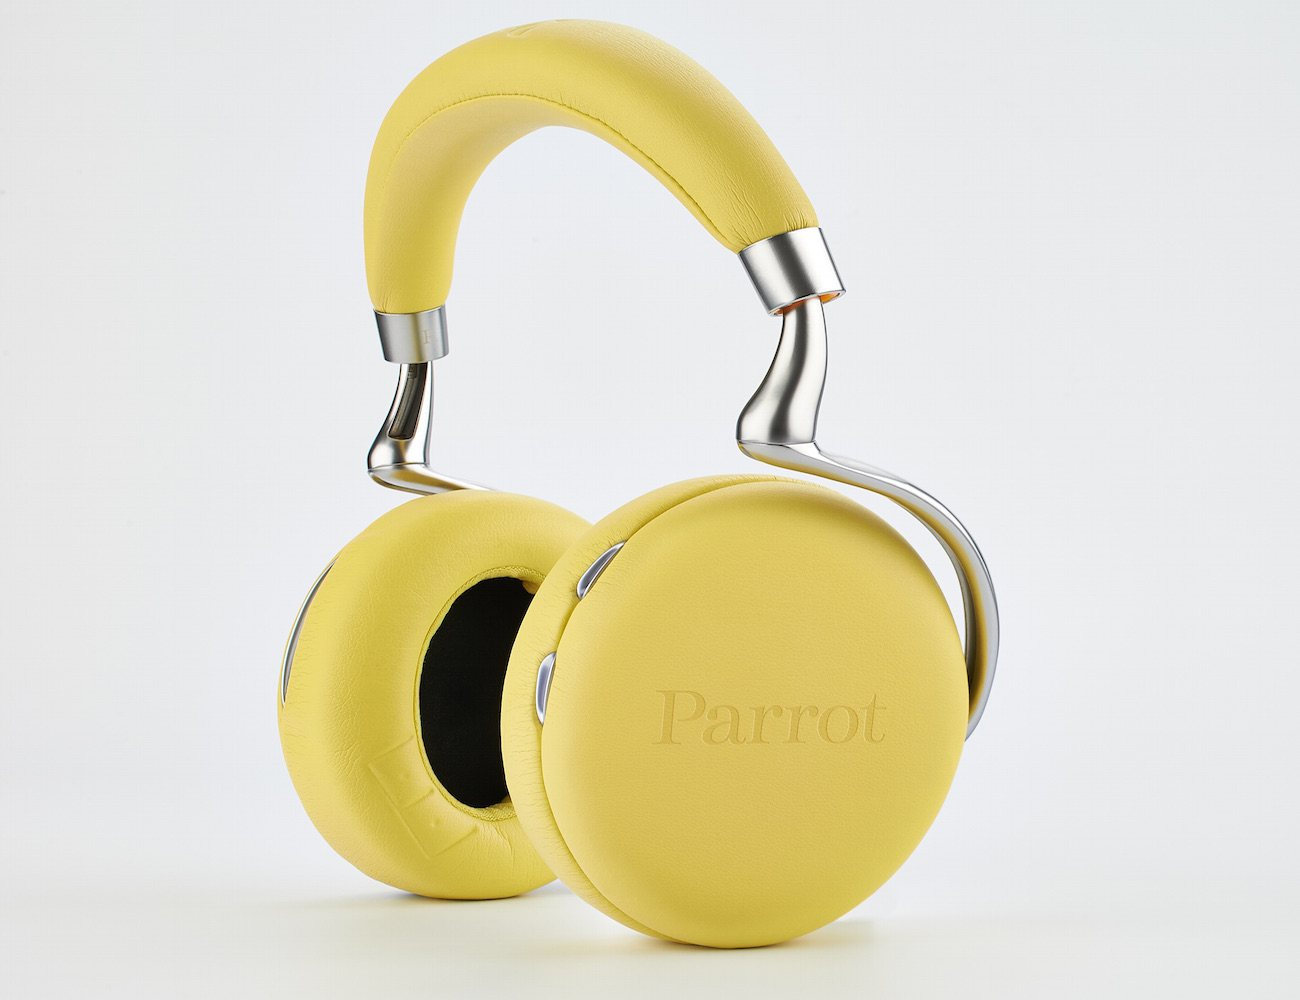 parrot zik 2 0 the world 39 s most advanced headphones gadget flow. Black Bedroom Furniture Sets. Home Design Ideas